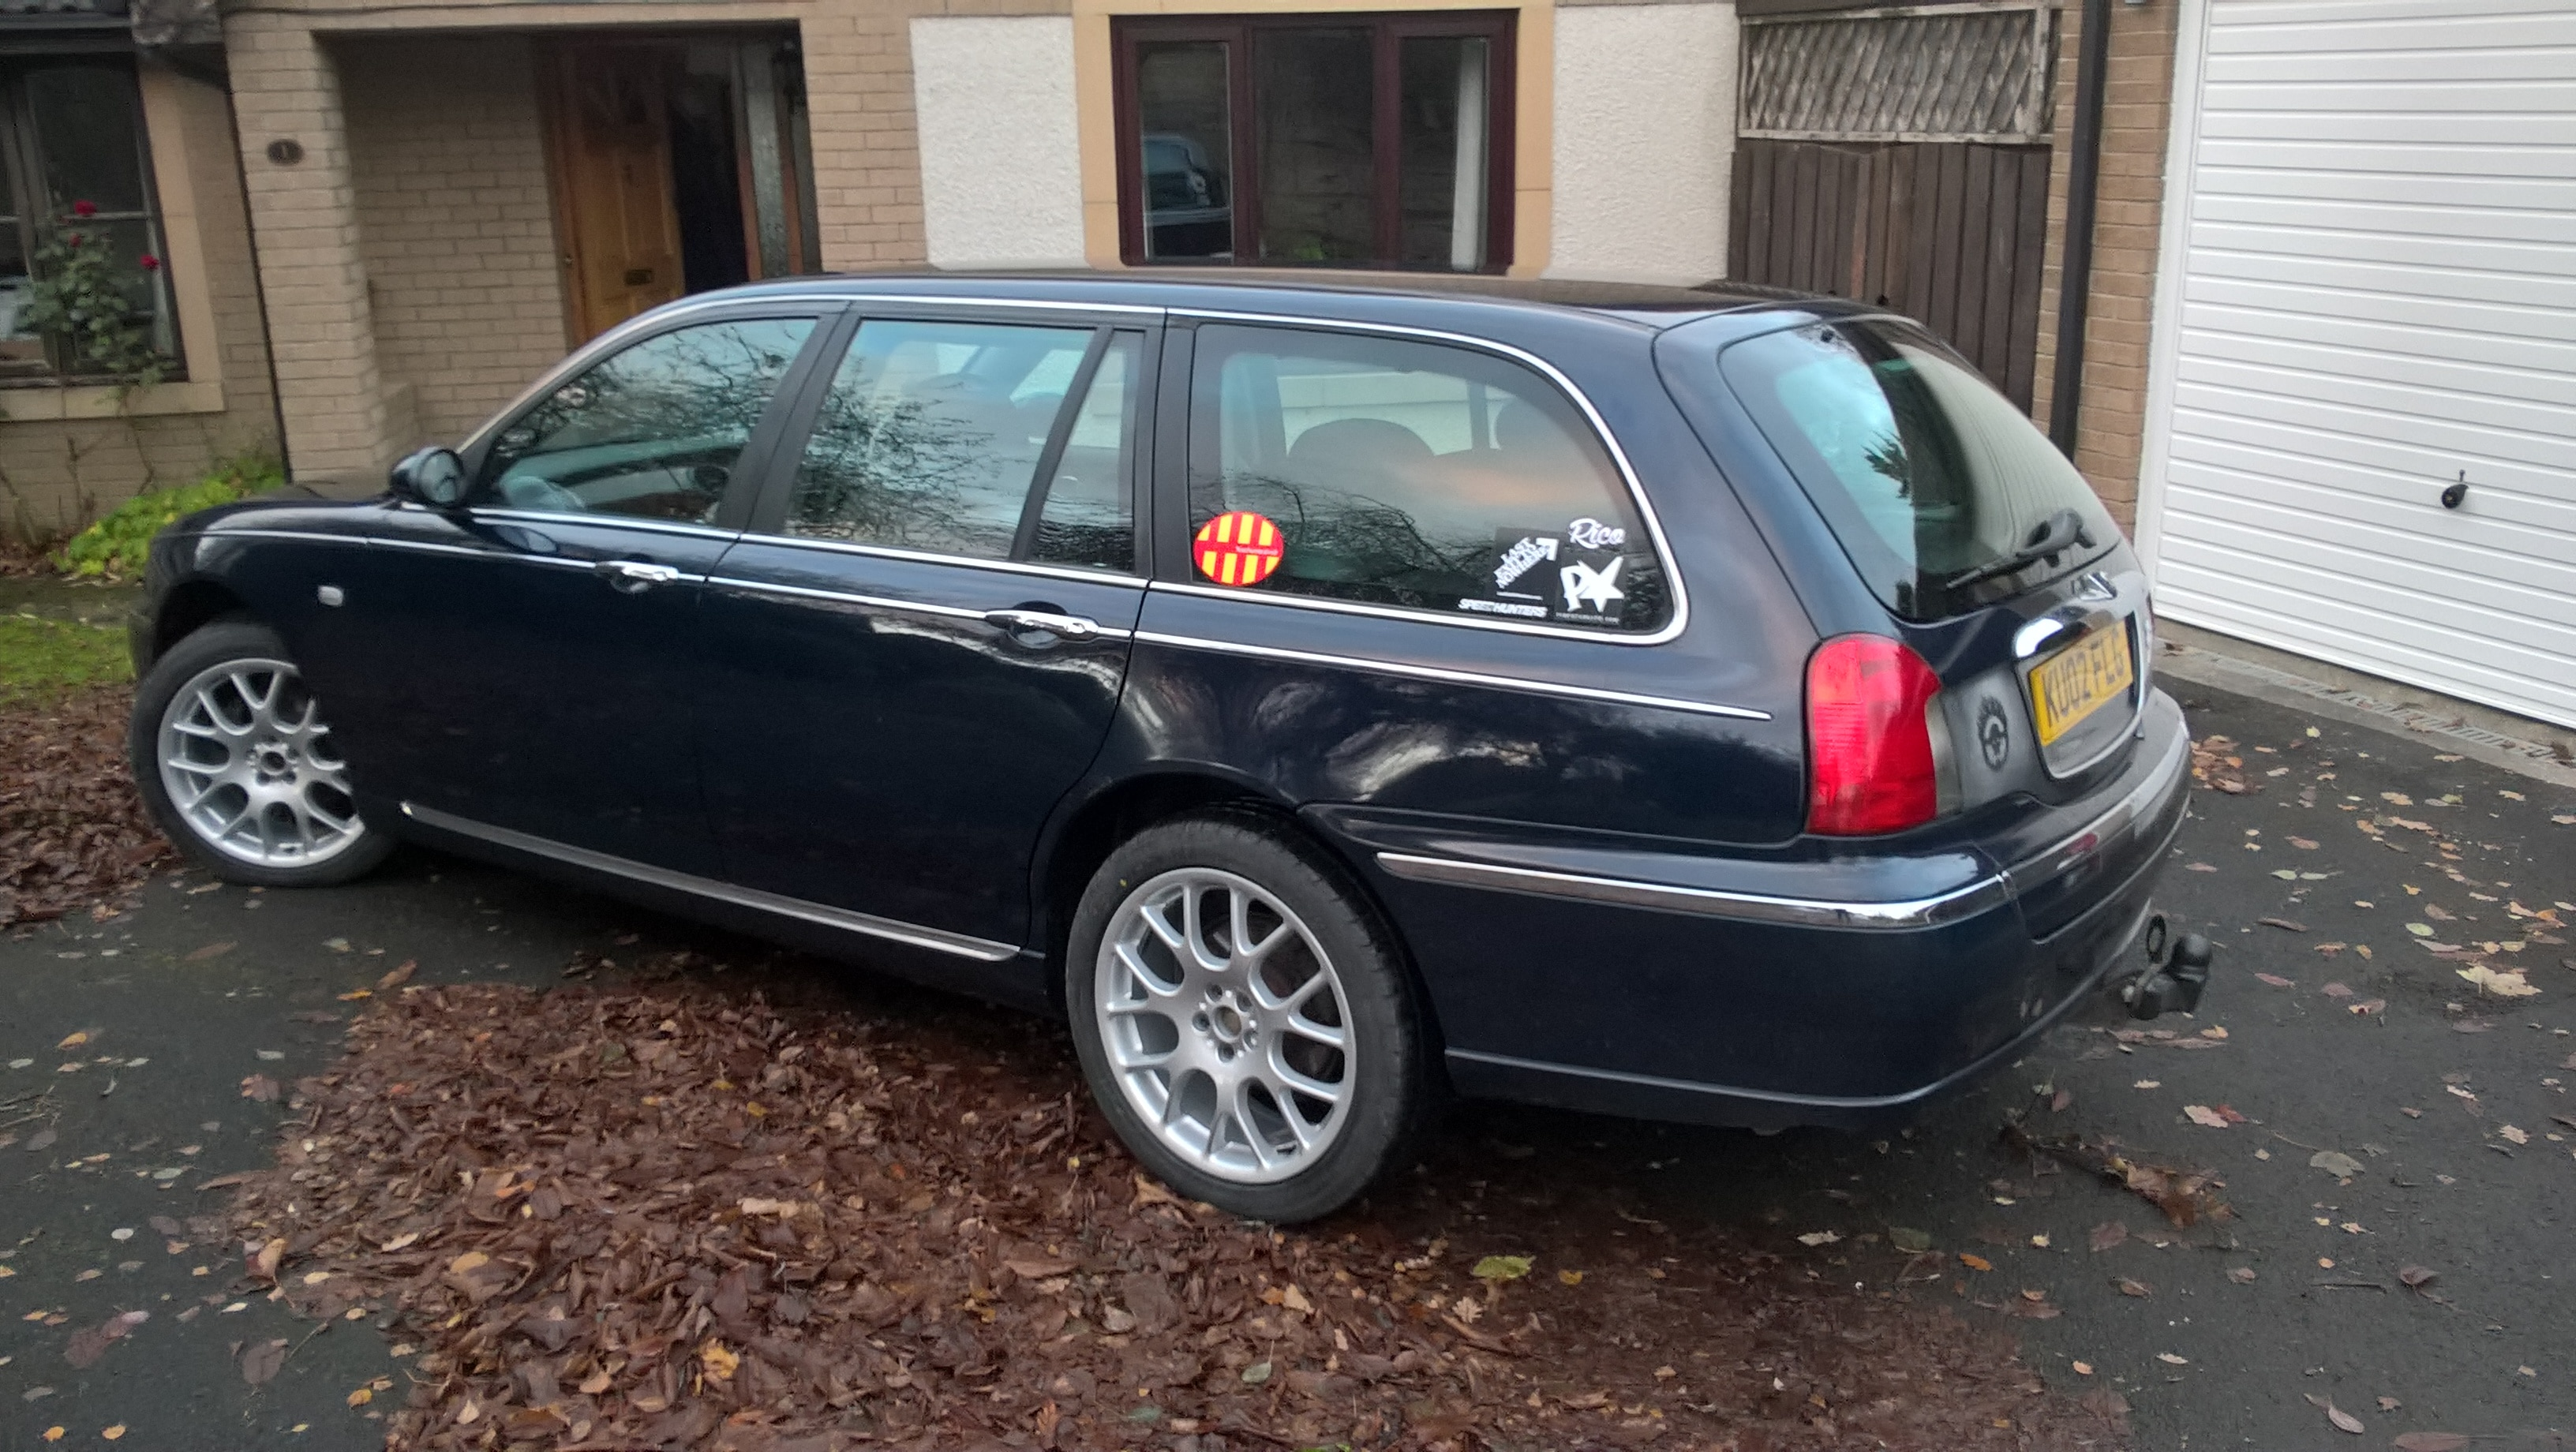 Rover 75, Rover, Rover 75 Tourer, Rover estate, estate car, Rich Scott Road House, Patrick Swayze, Dalton, work car, movies, Hollywood, motorign, automotive, Longbridge, car, cars, your car, reliable car, diesel, diesel estate, ebay, ebay motors, autotrader